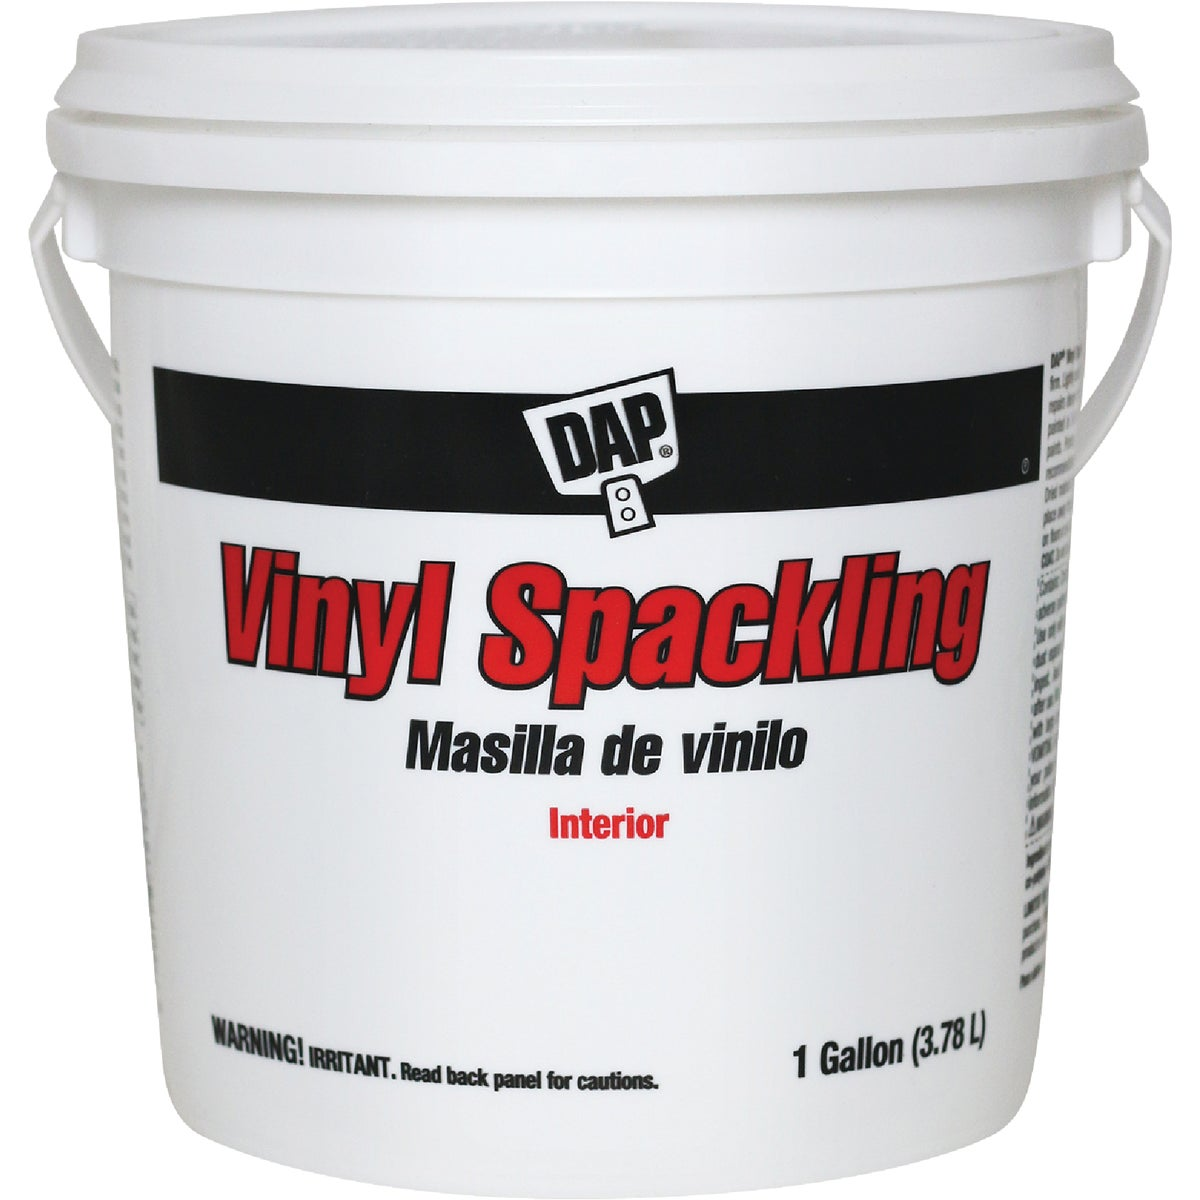 GAL VINYL SPACKLING